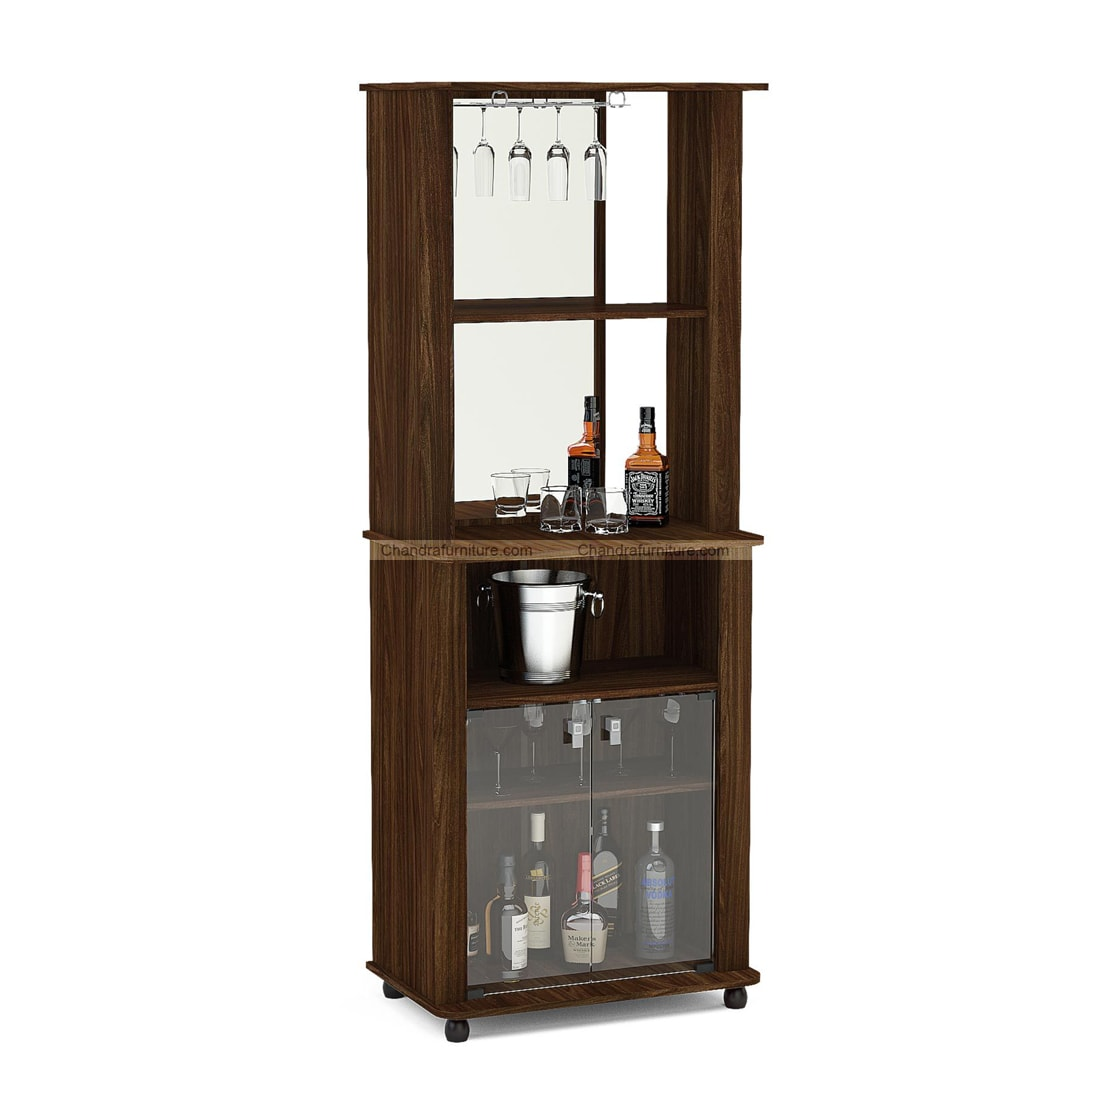 Chandra Furniture Javier Bar Cabinet